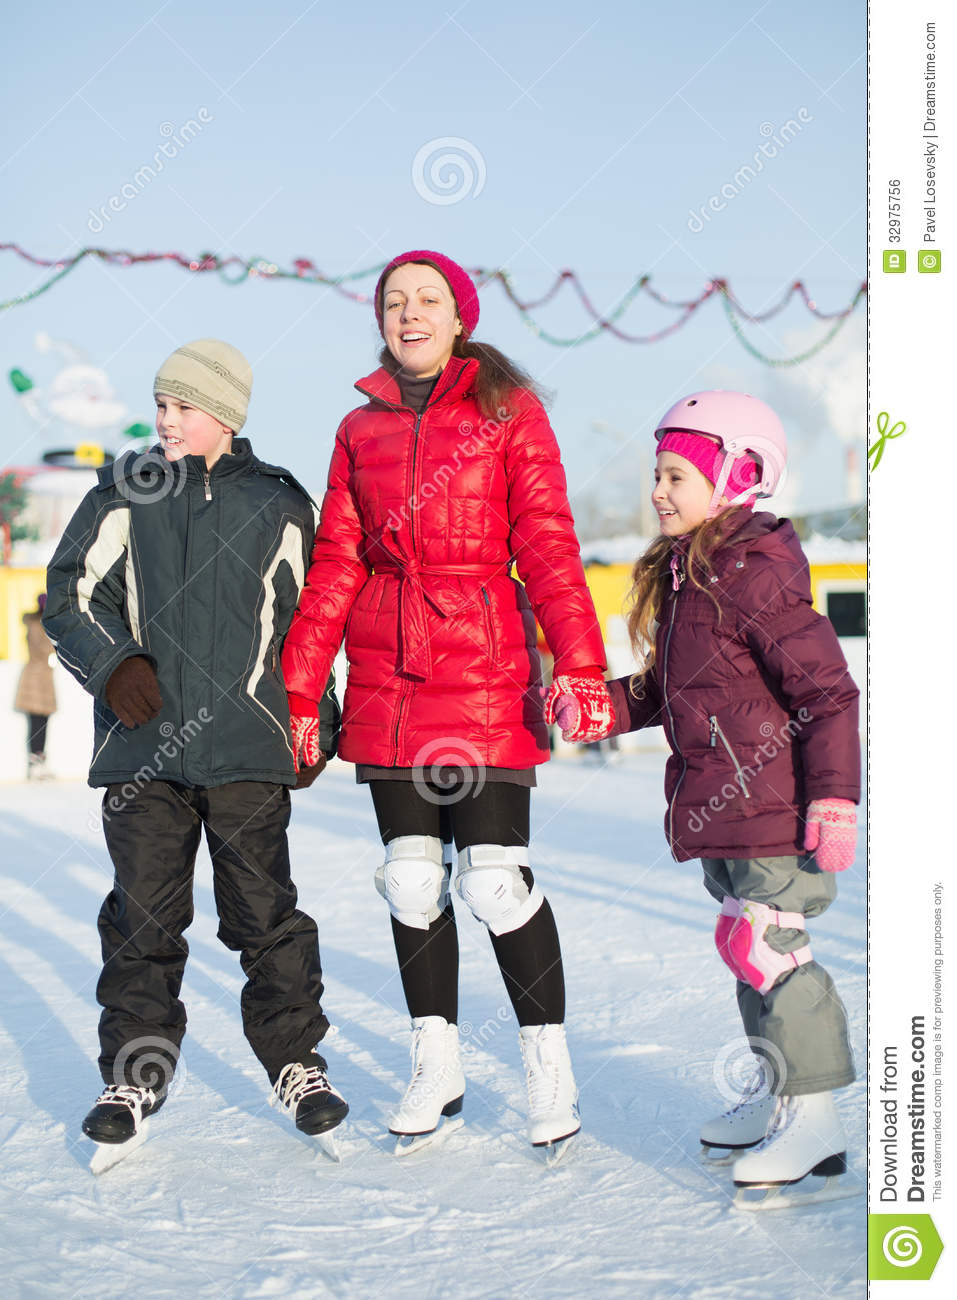 A mother with children standing on the outdoor skating rink